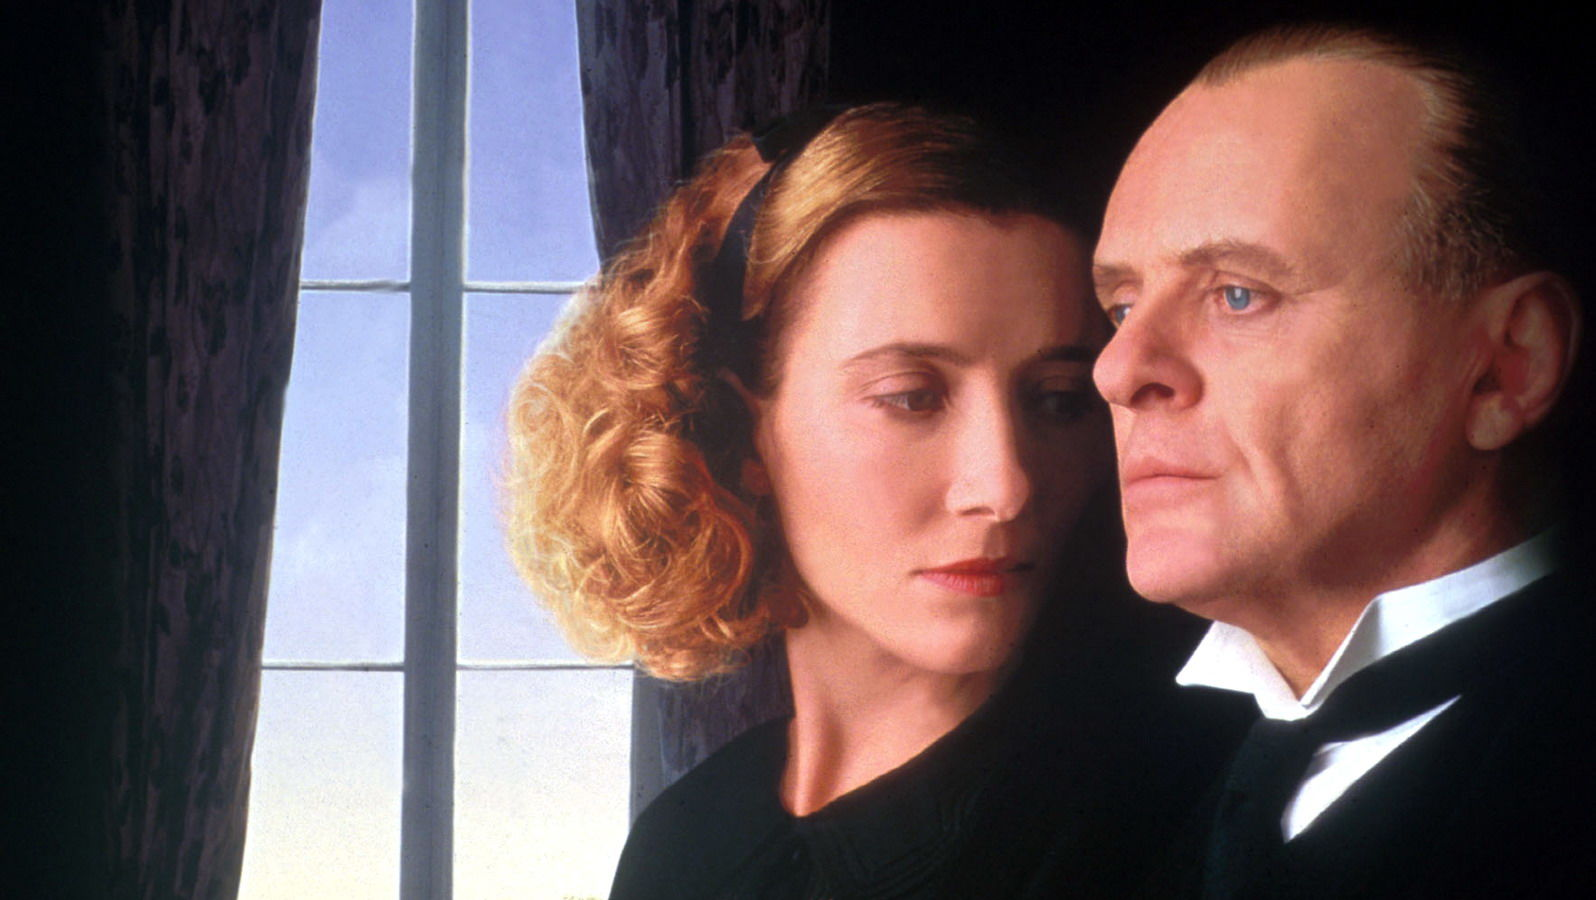 Emma Thompson and Anthony Hopkins in promotional image for the film Remains of the Day